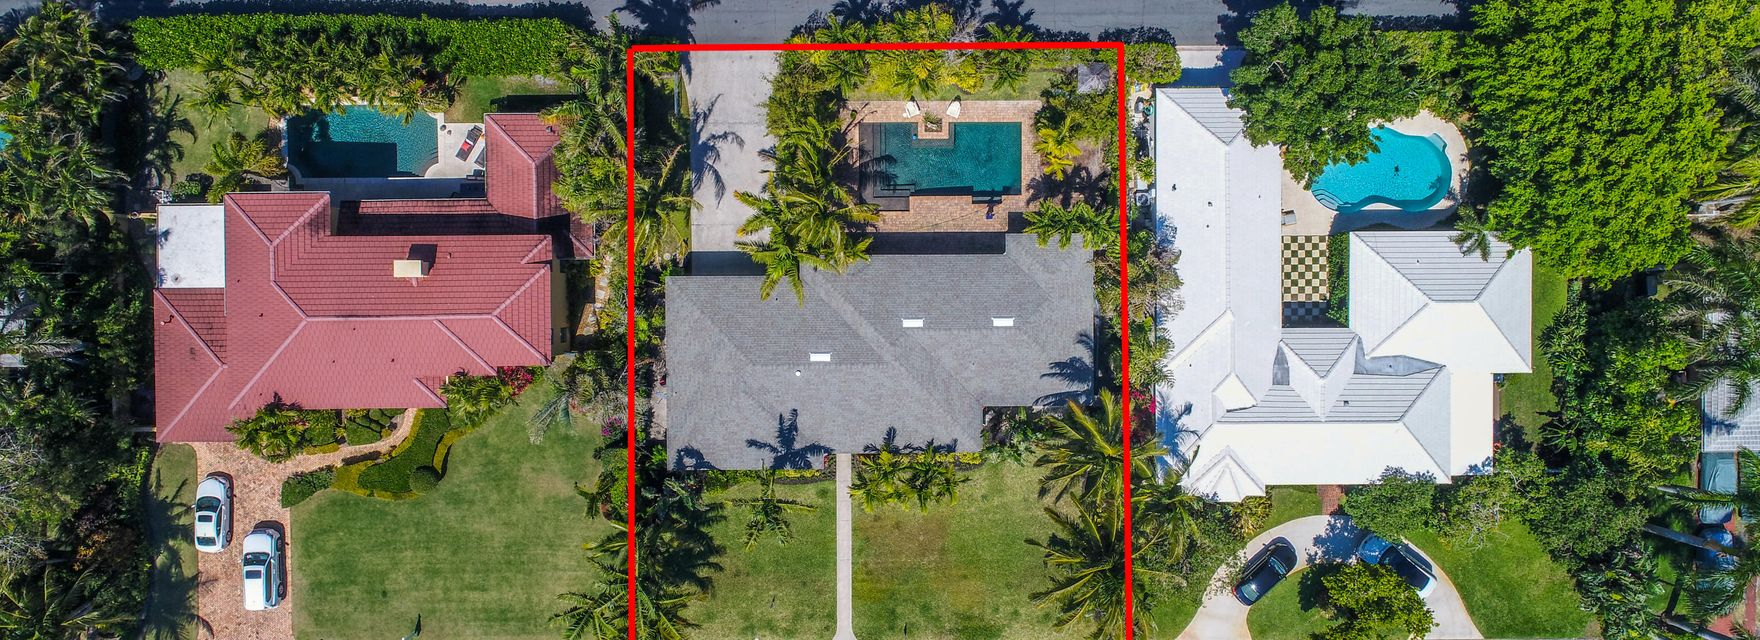 225 Russlyn Drive West Palm Beach, FL 33405 small photo 5